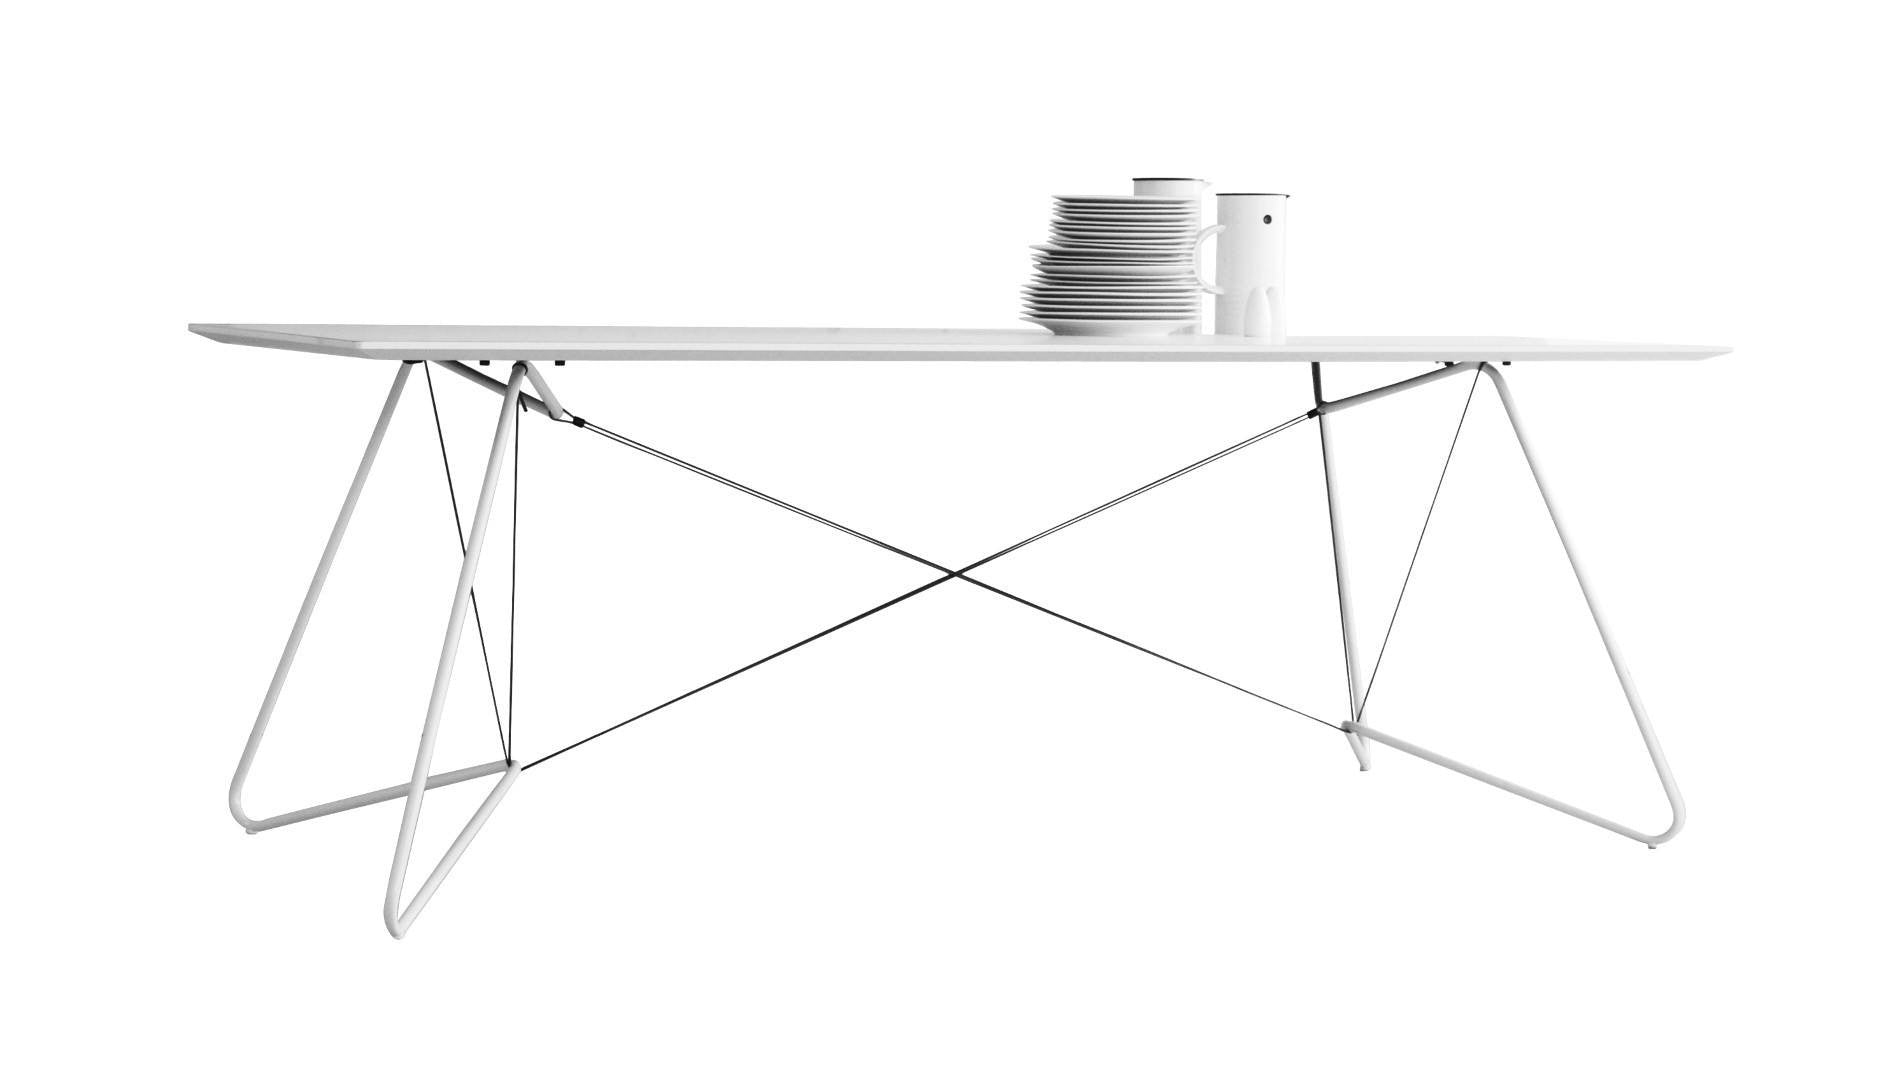 Dining table ON A STRING